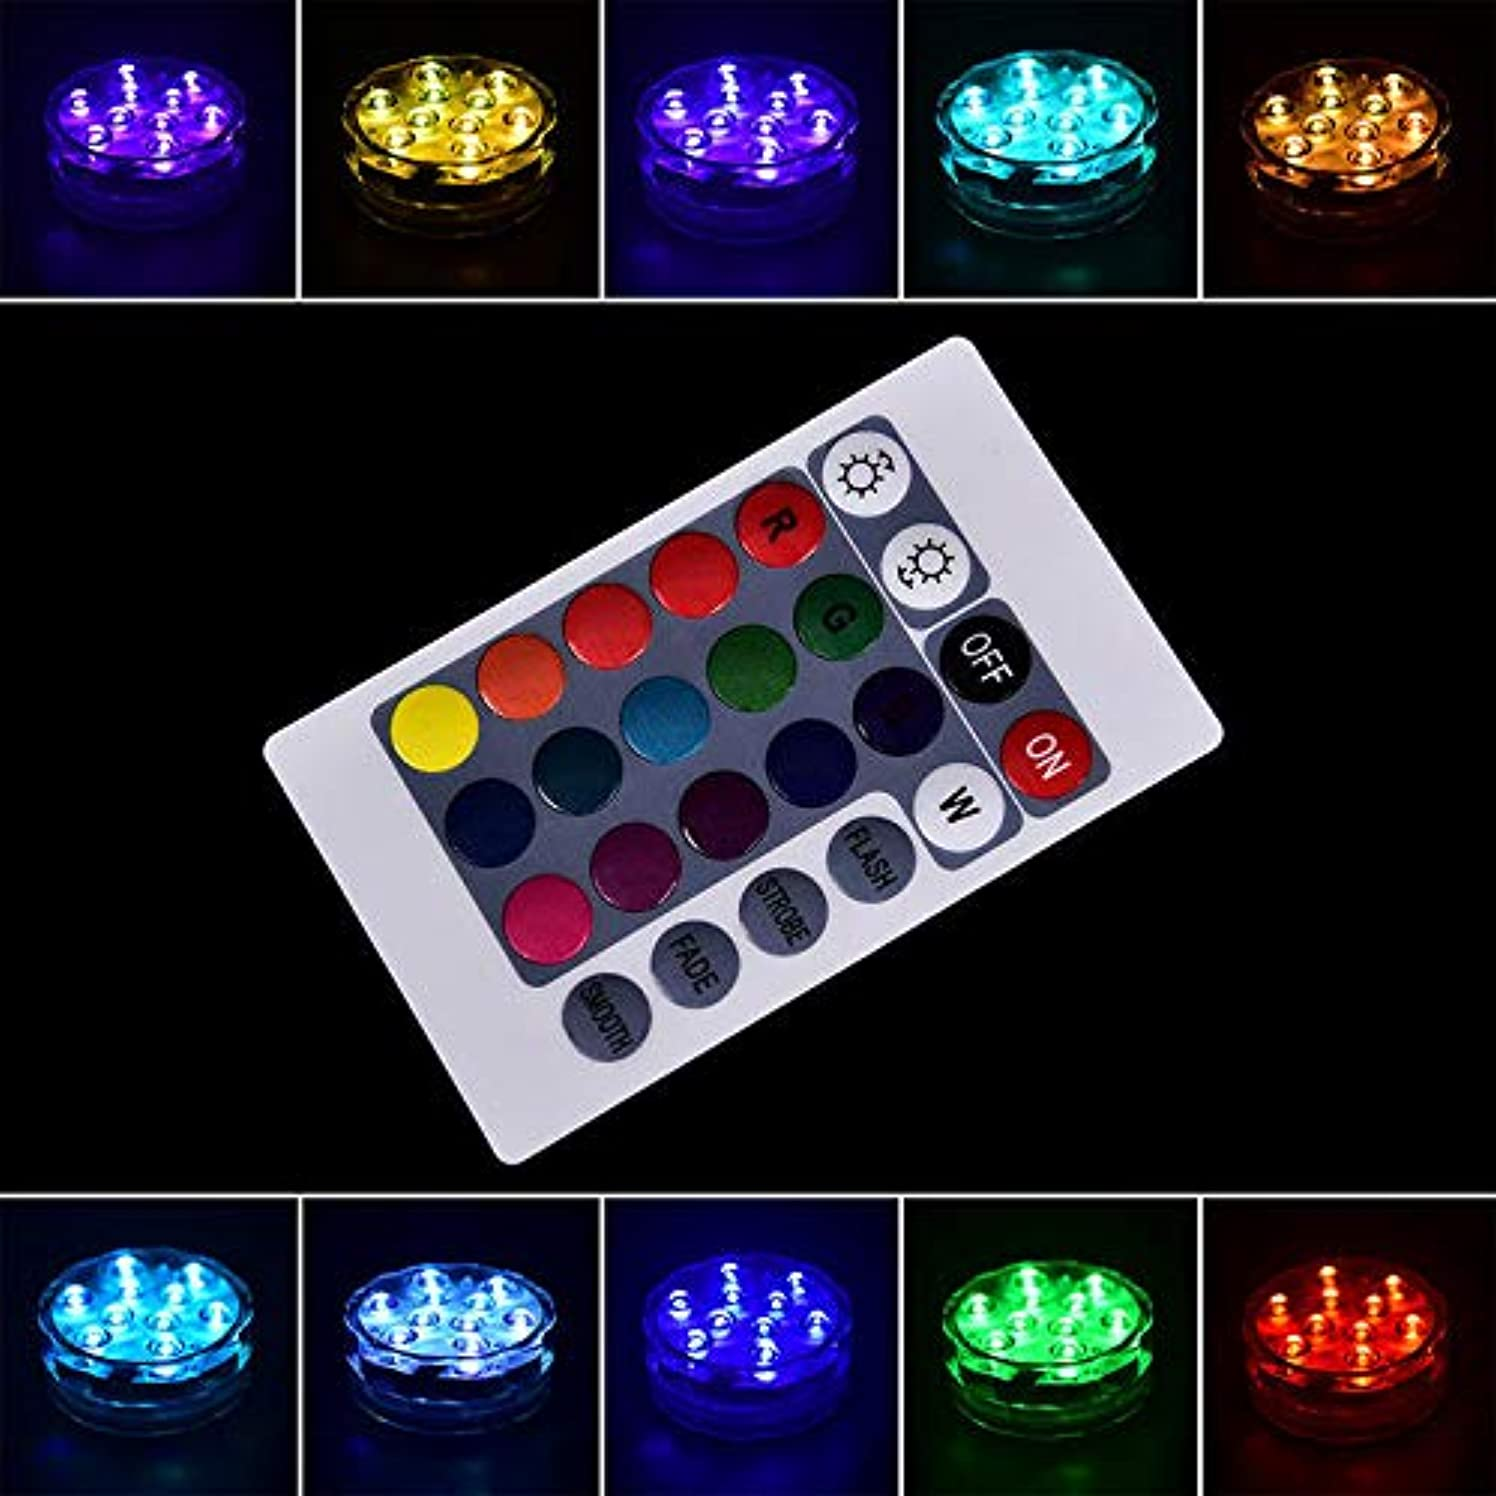 XFENGUS 10 LED RGB Submersible LED Light Battery Operated Multi Color Remote Controlled Waterproof Light from China